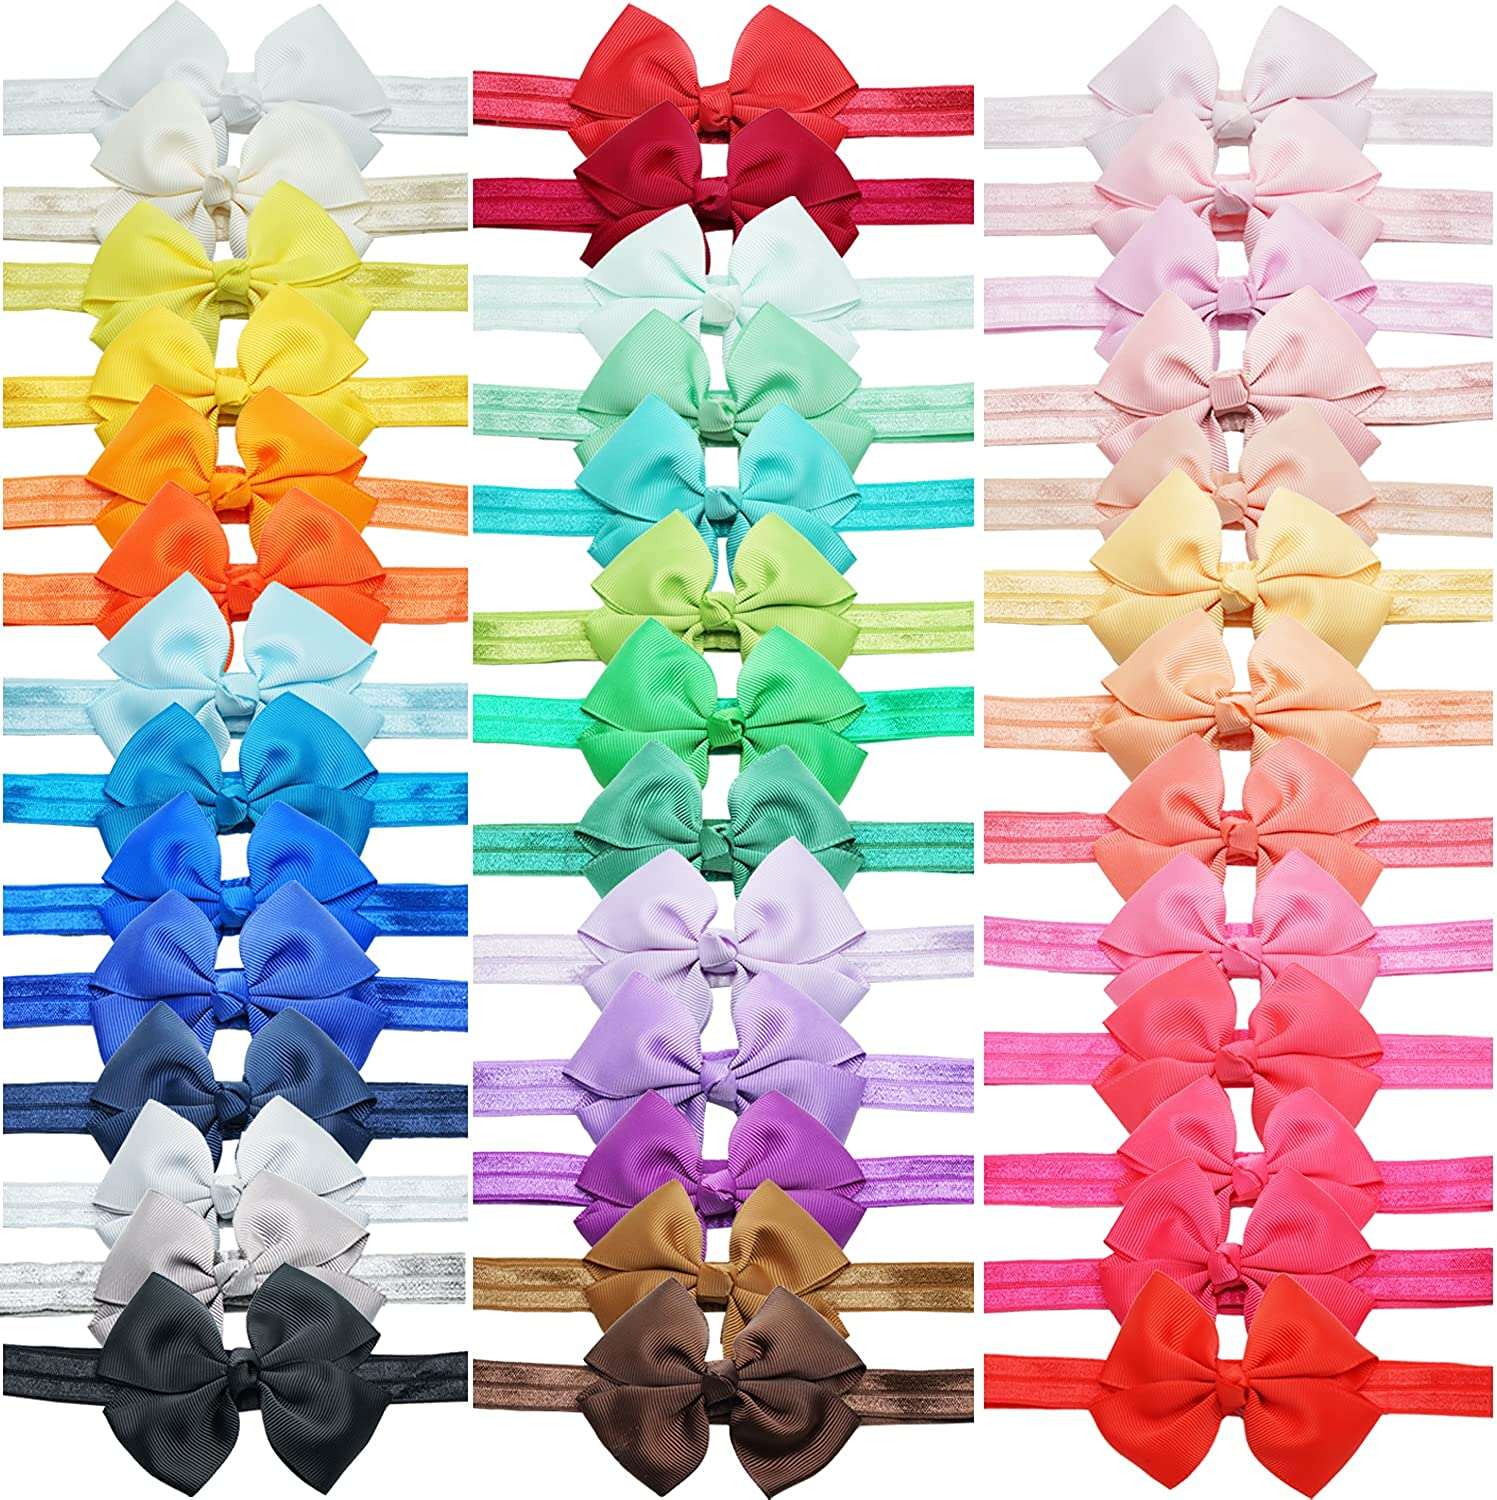 40 Colors Baby Girls Grosgrain Ribbon Hair Bows Headbands Hair Accessories 3.5Inch Bows Elastic Hairbands for Infants Toddlers Kids Children